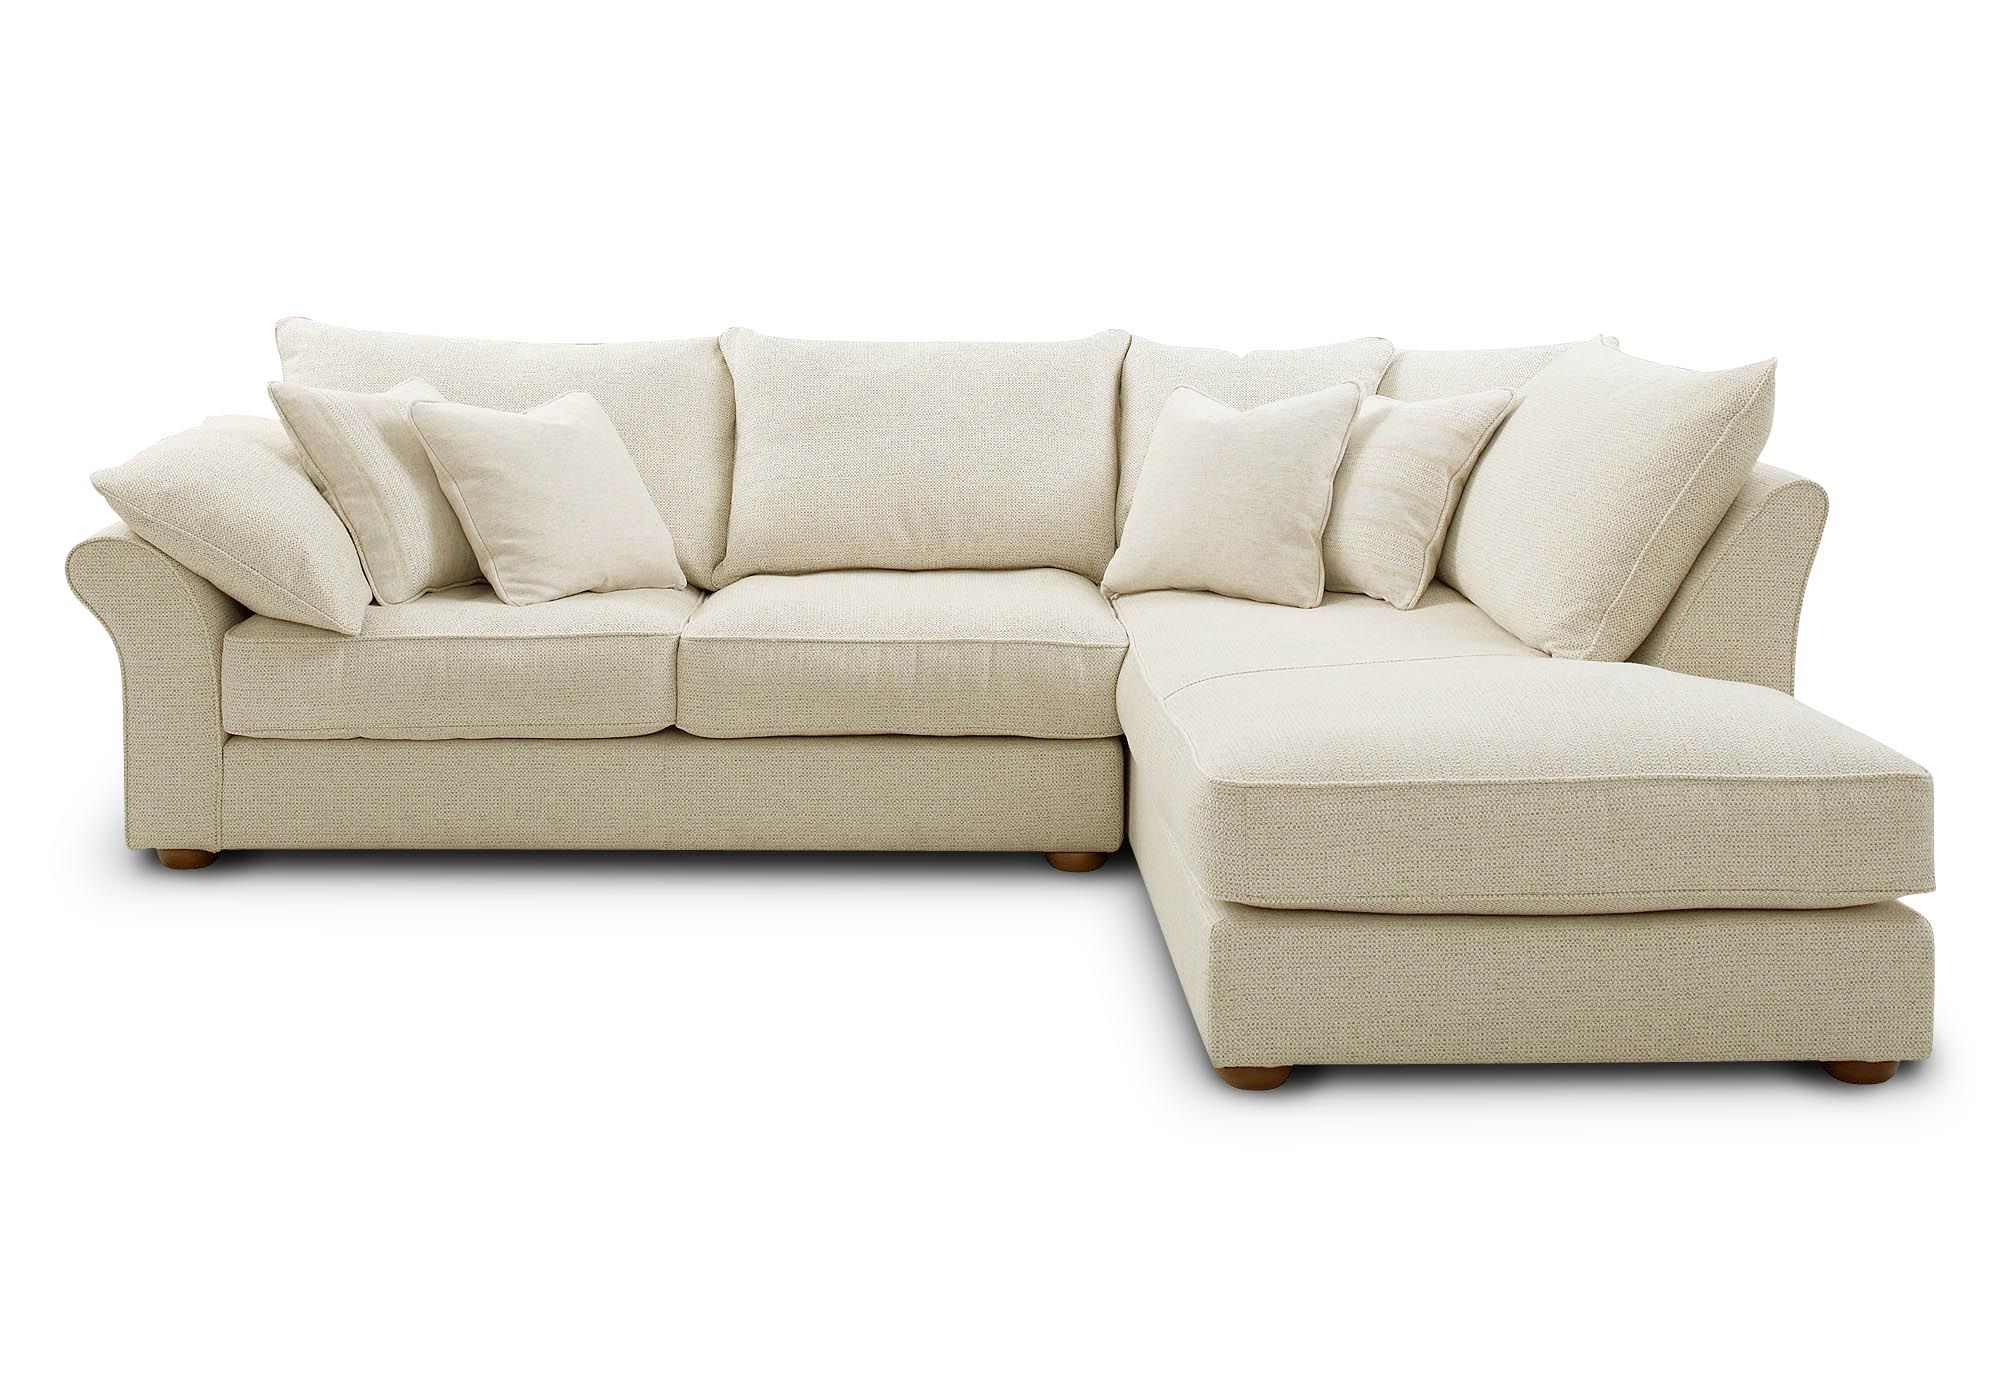 Corner chaise sofa collins u hayes catalina sofa sets corner